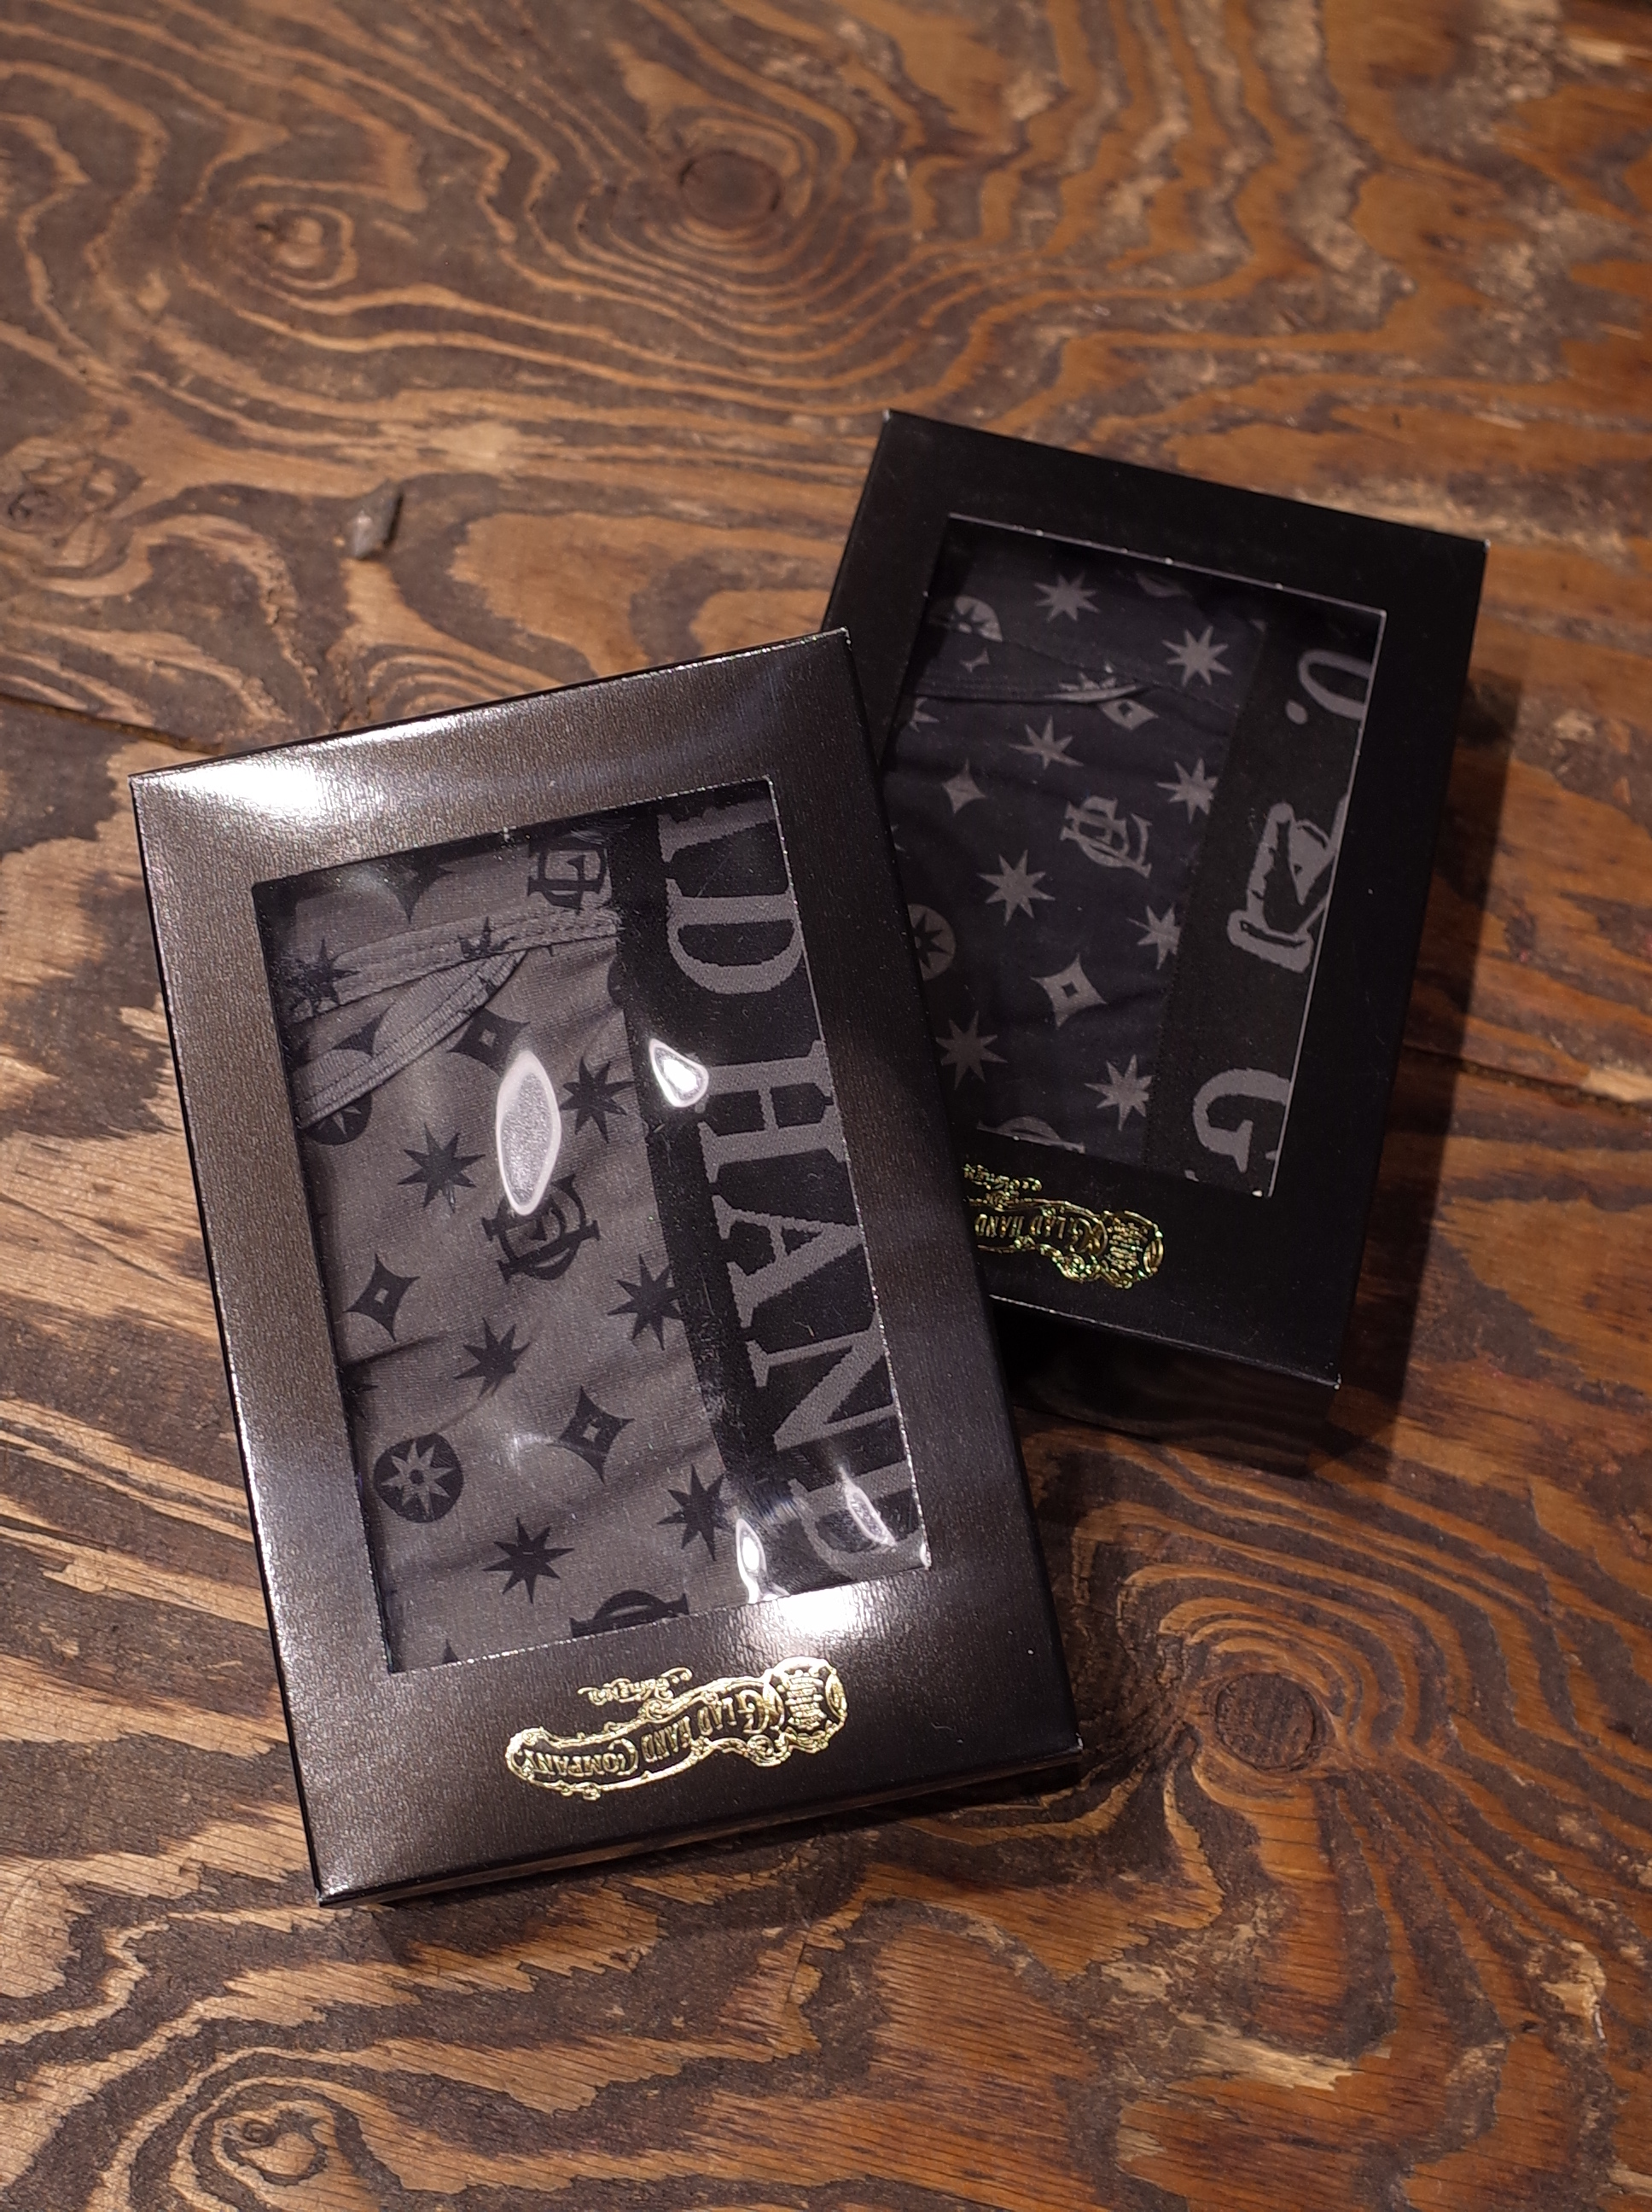 【NEW YEAR LIMITED ITEM !!】 GLAD HAND  「GH FAMILY CREST - BOXERS」  ボクサーパンツ